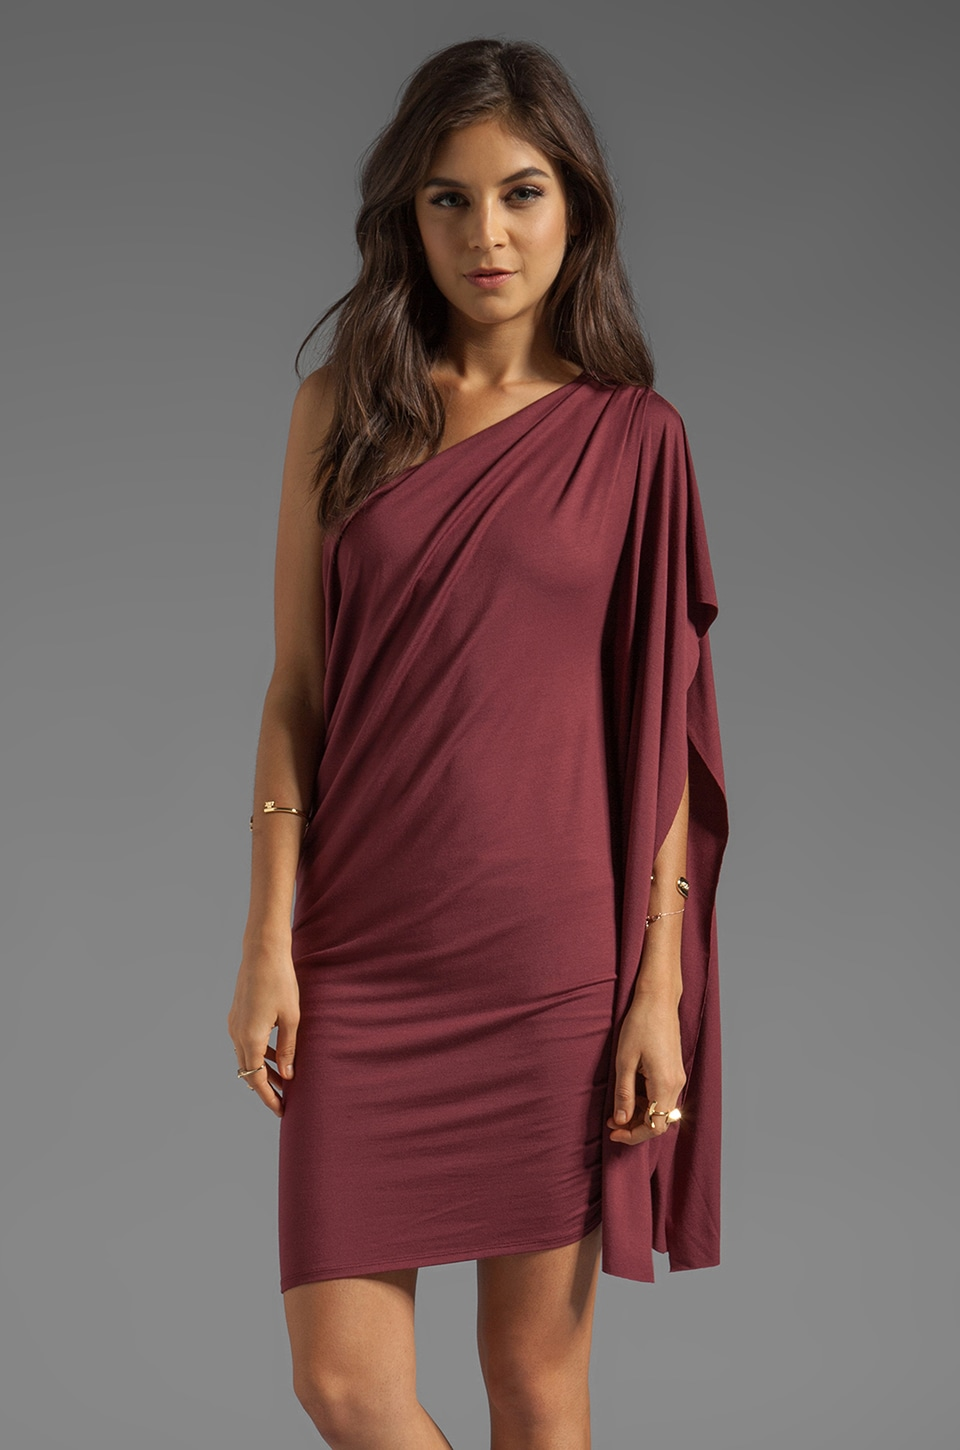 Rachel Pally Reed Dress in Pinot